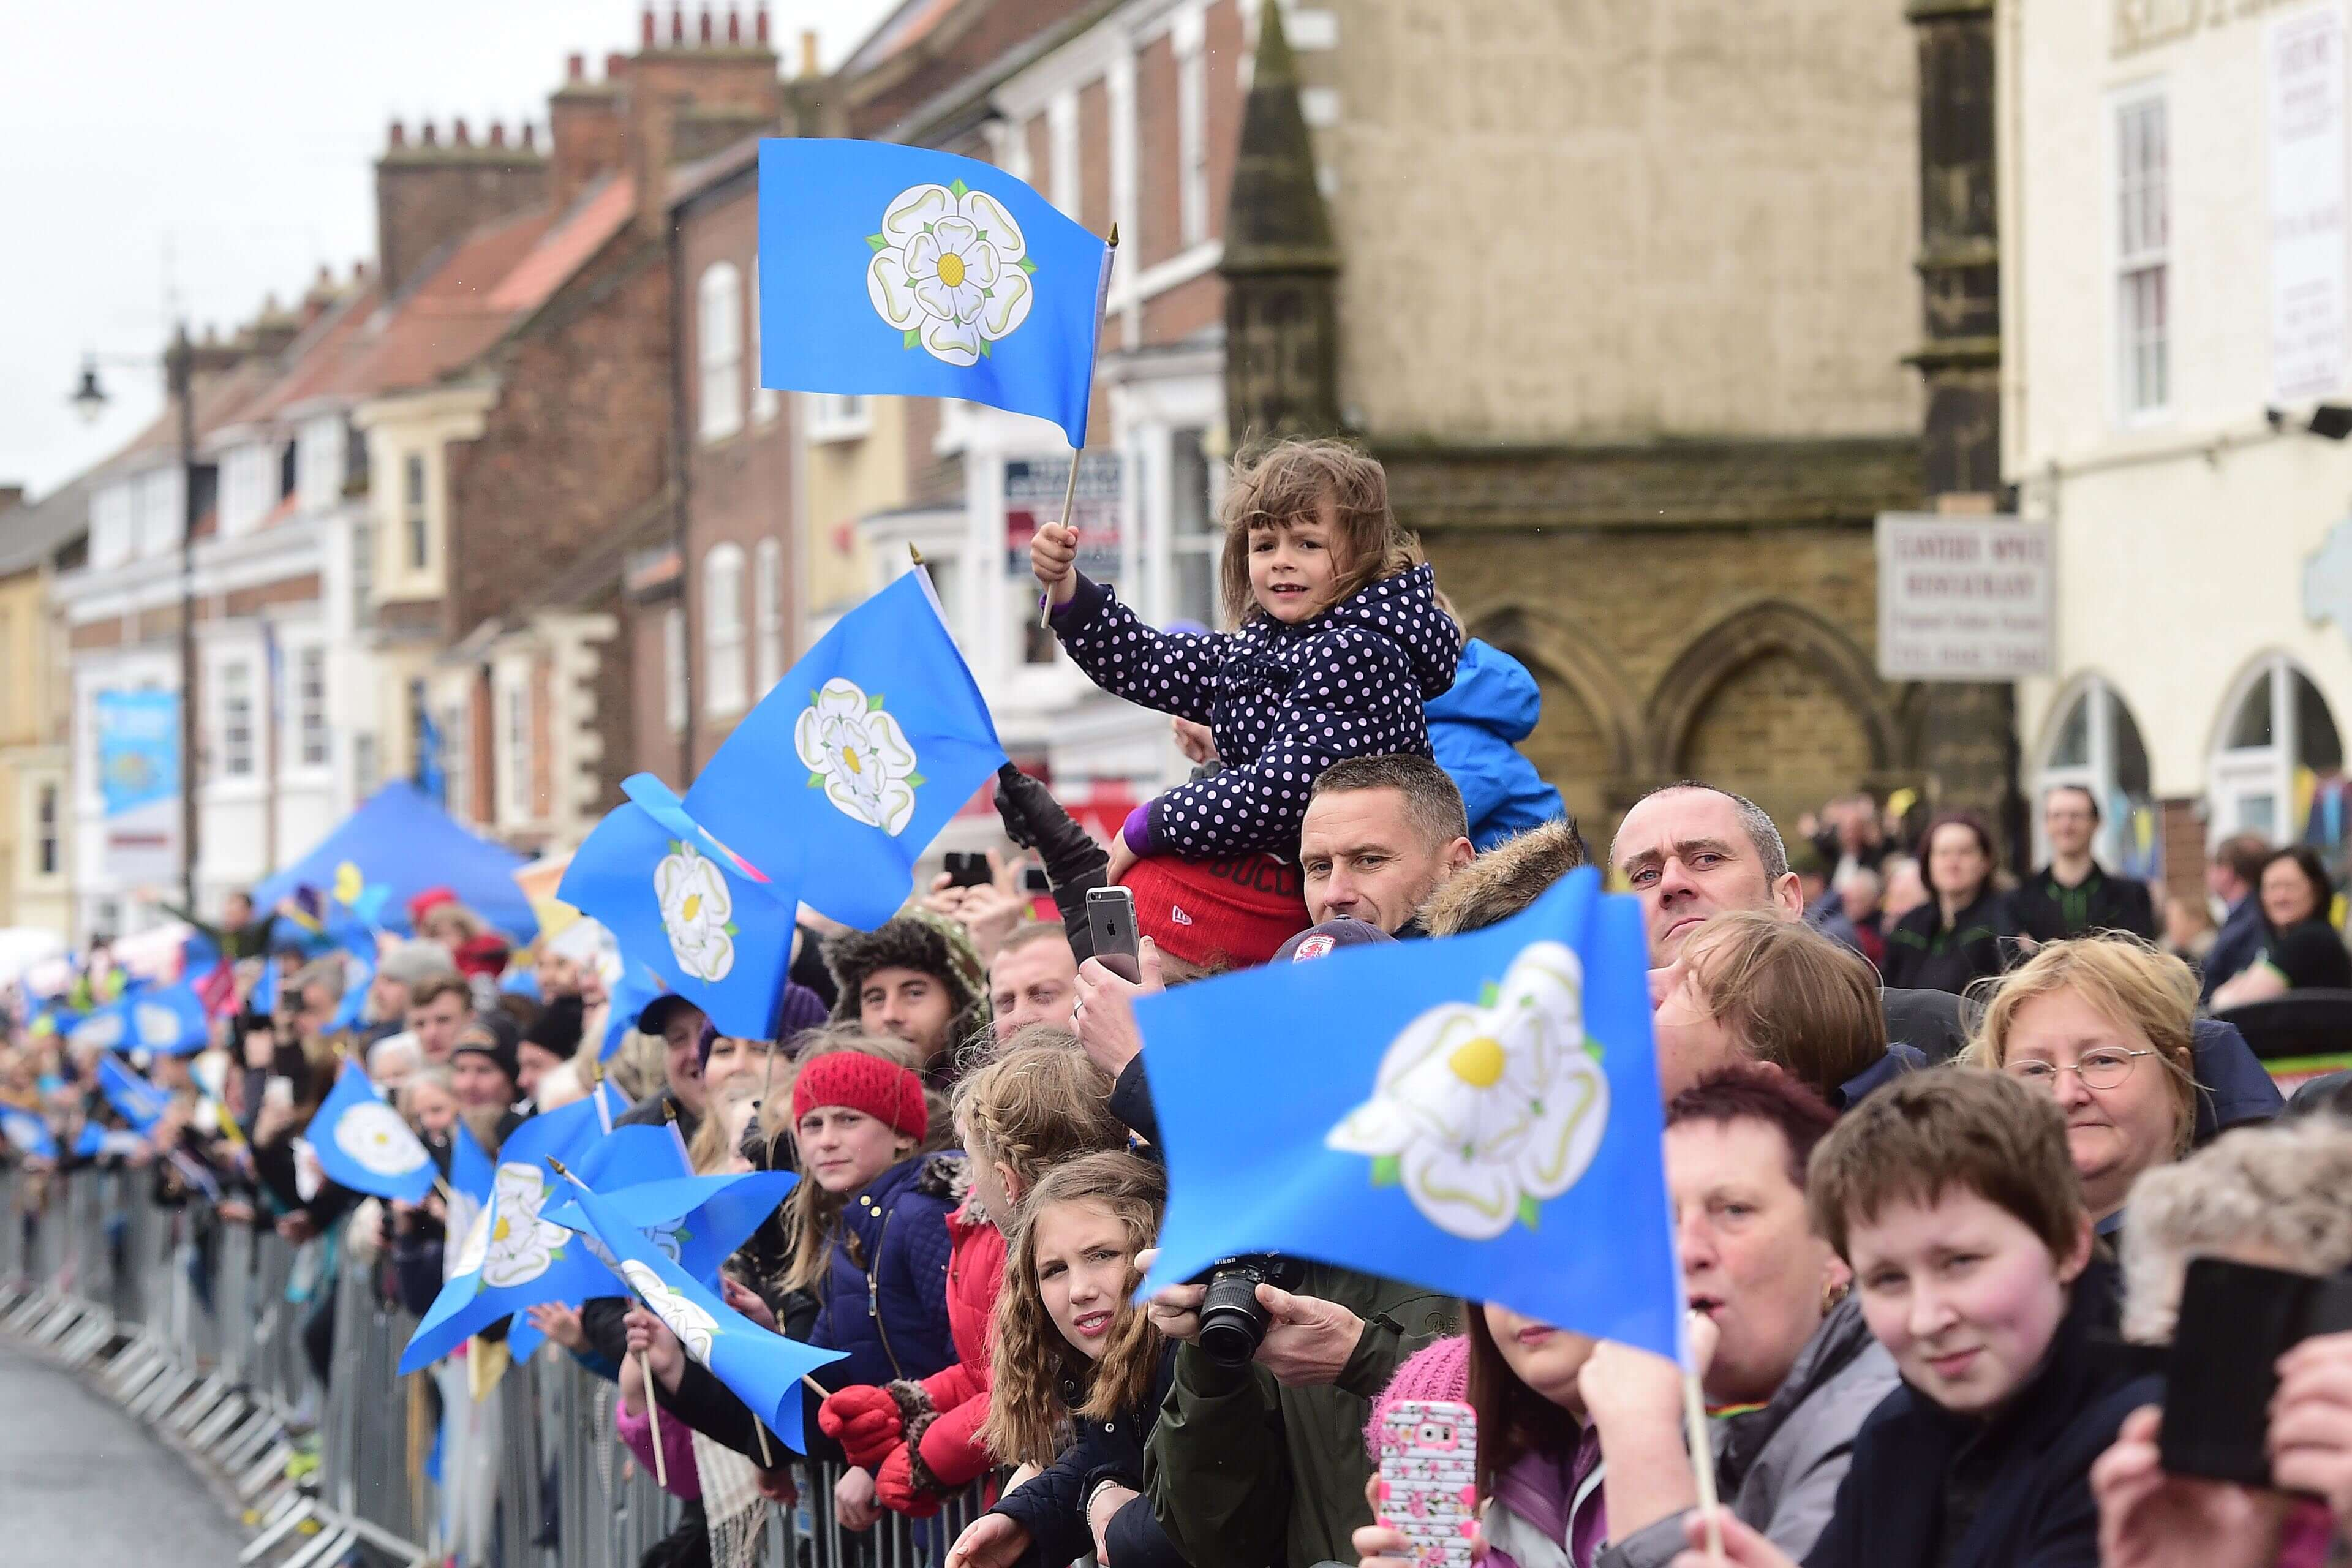 Join us for the best Yorkshire events in 2017